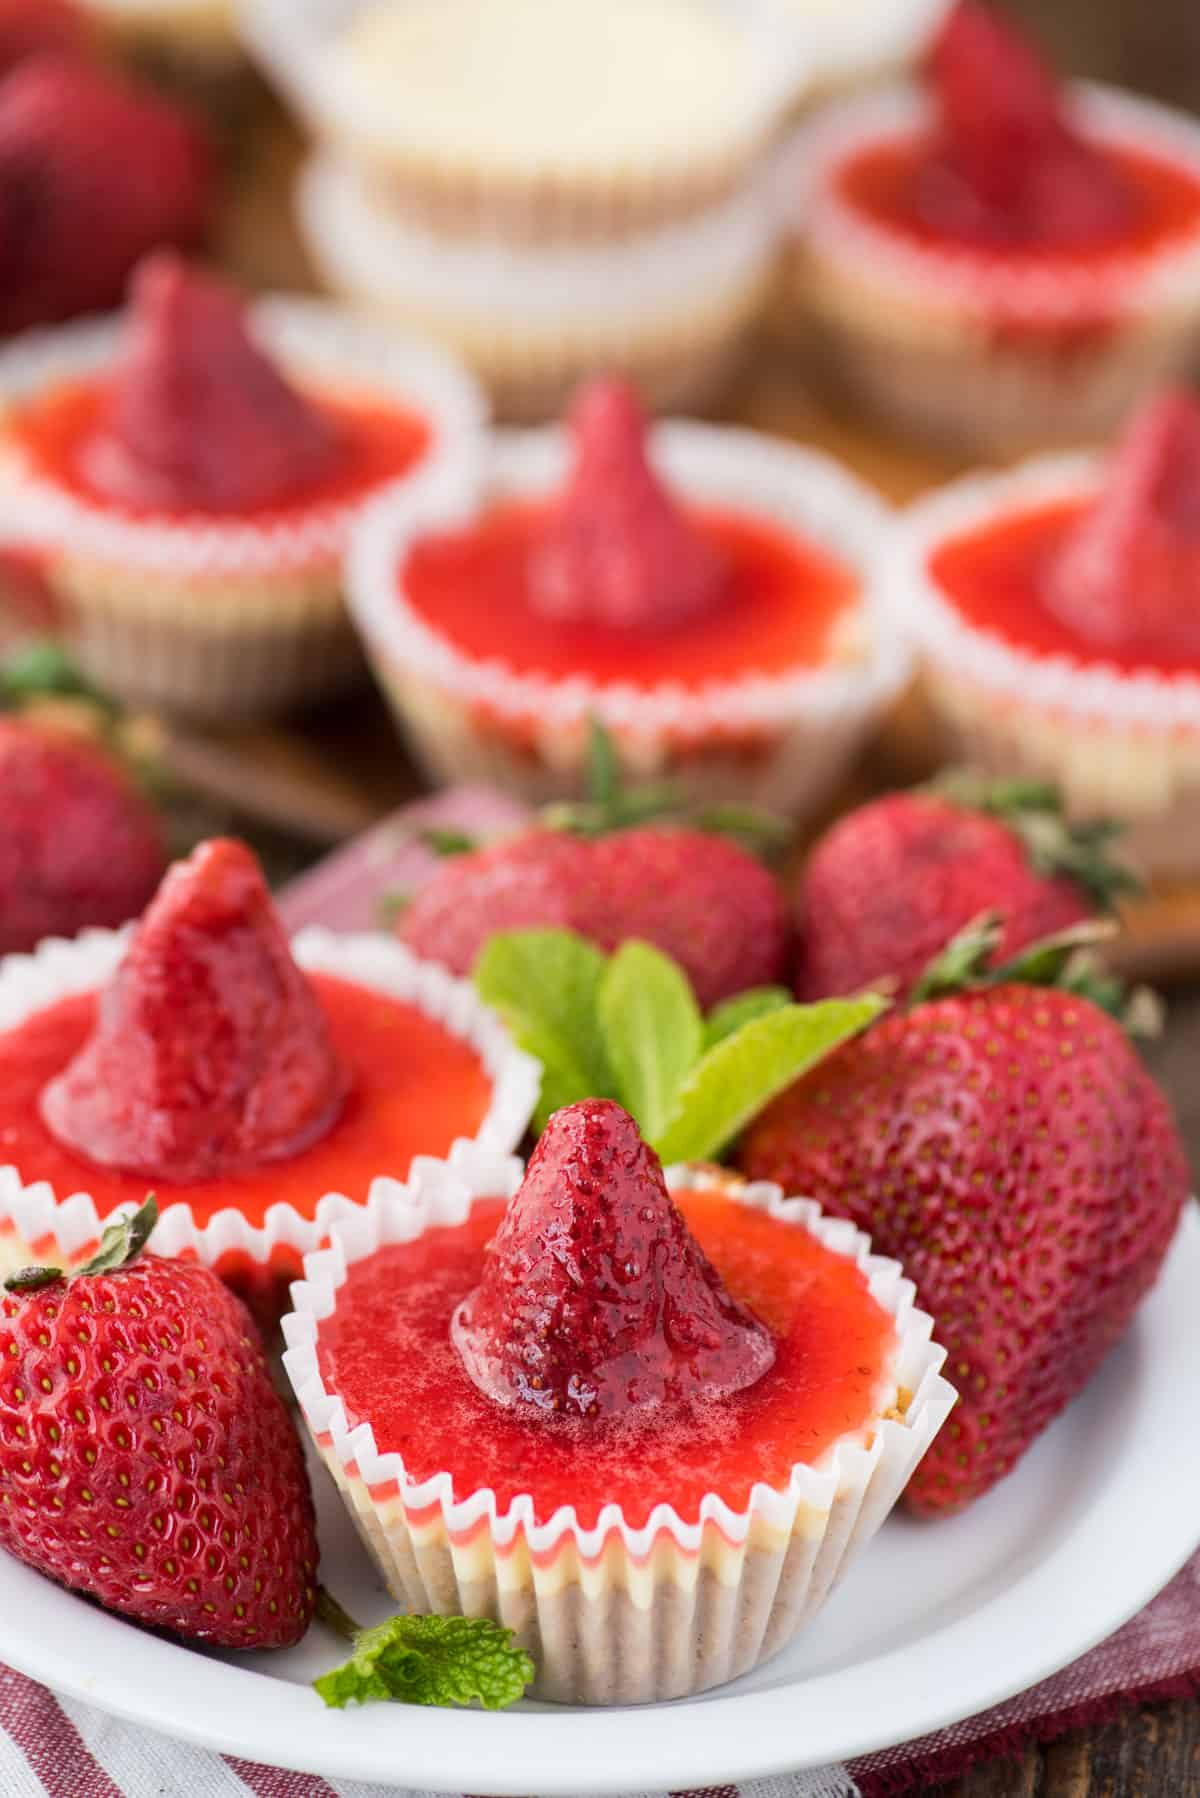 mini plain cheesecakes with strawberry topping on white serving tray